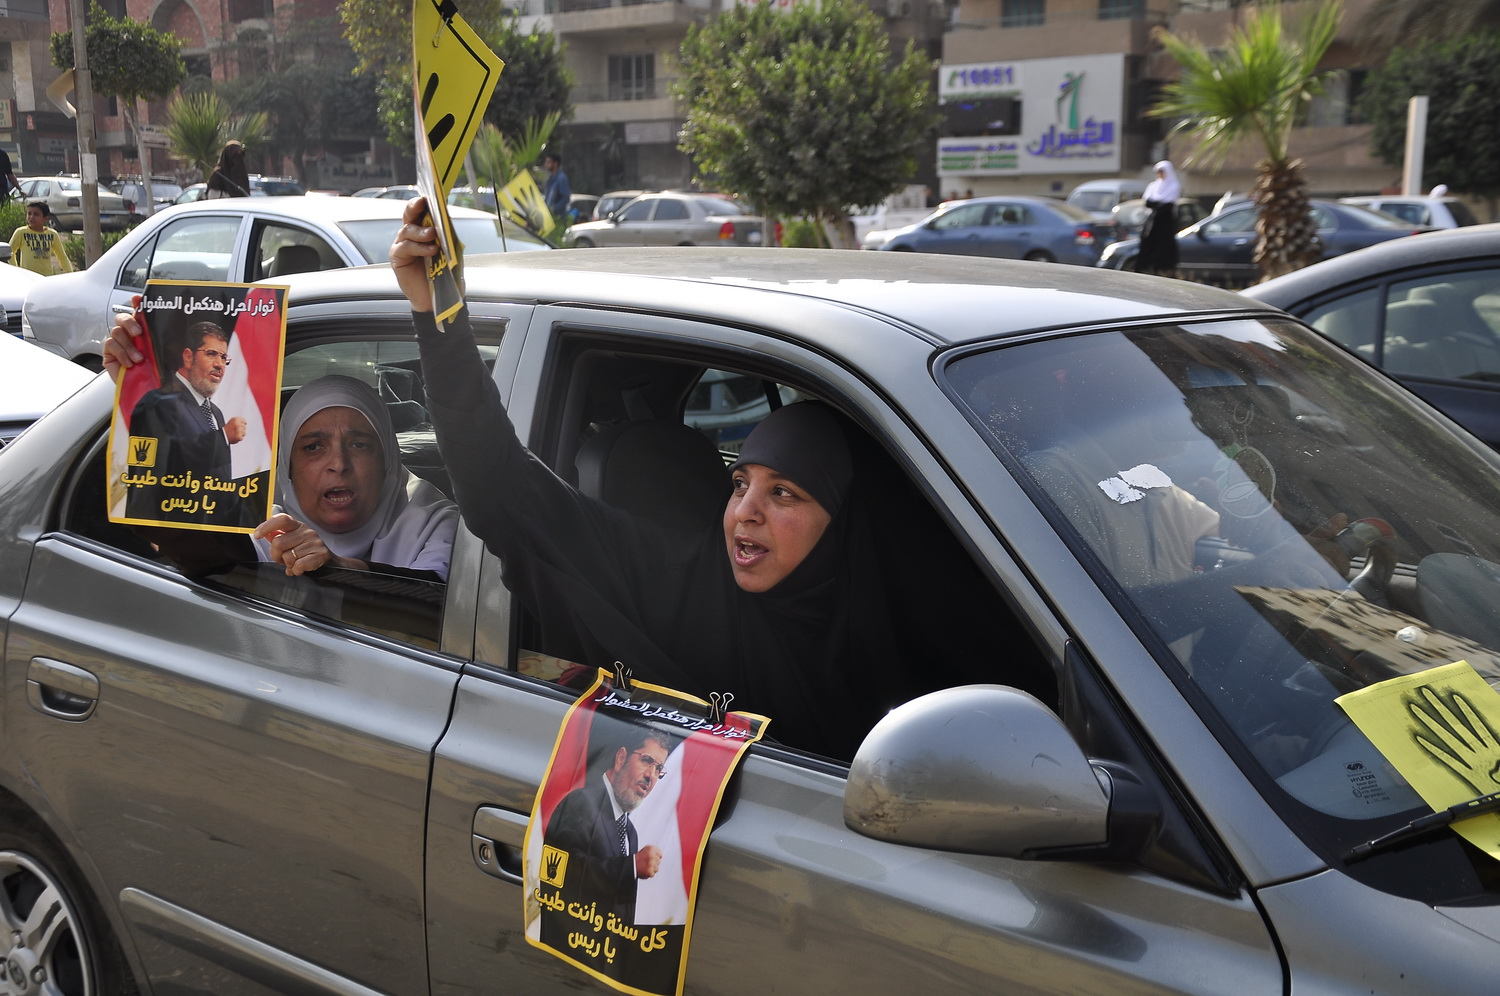 Morsi supporters march in Nasr City on 8 November (Photo by Mohamed omar/DNE)